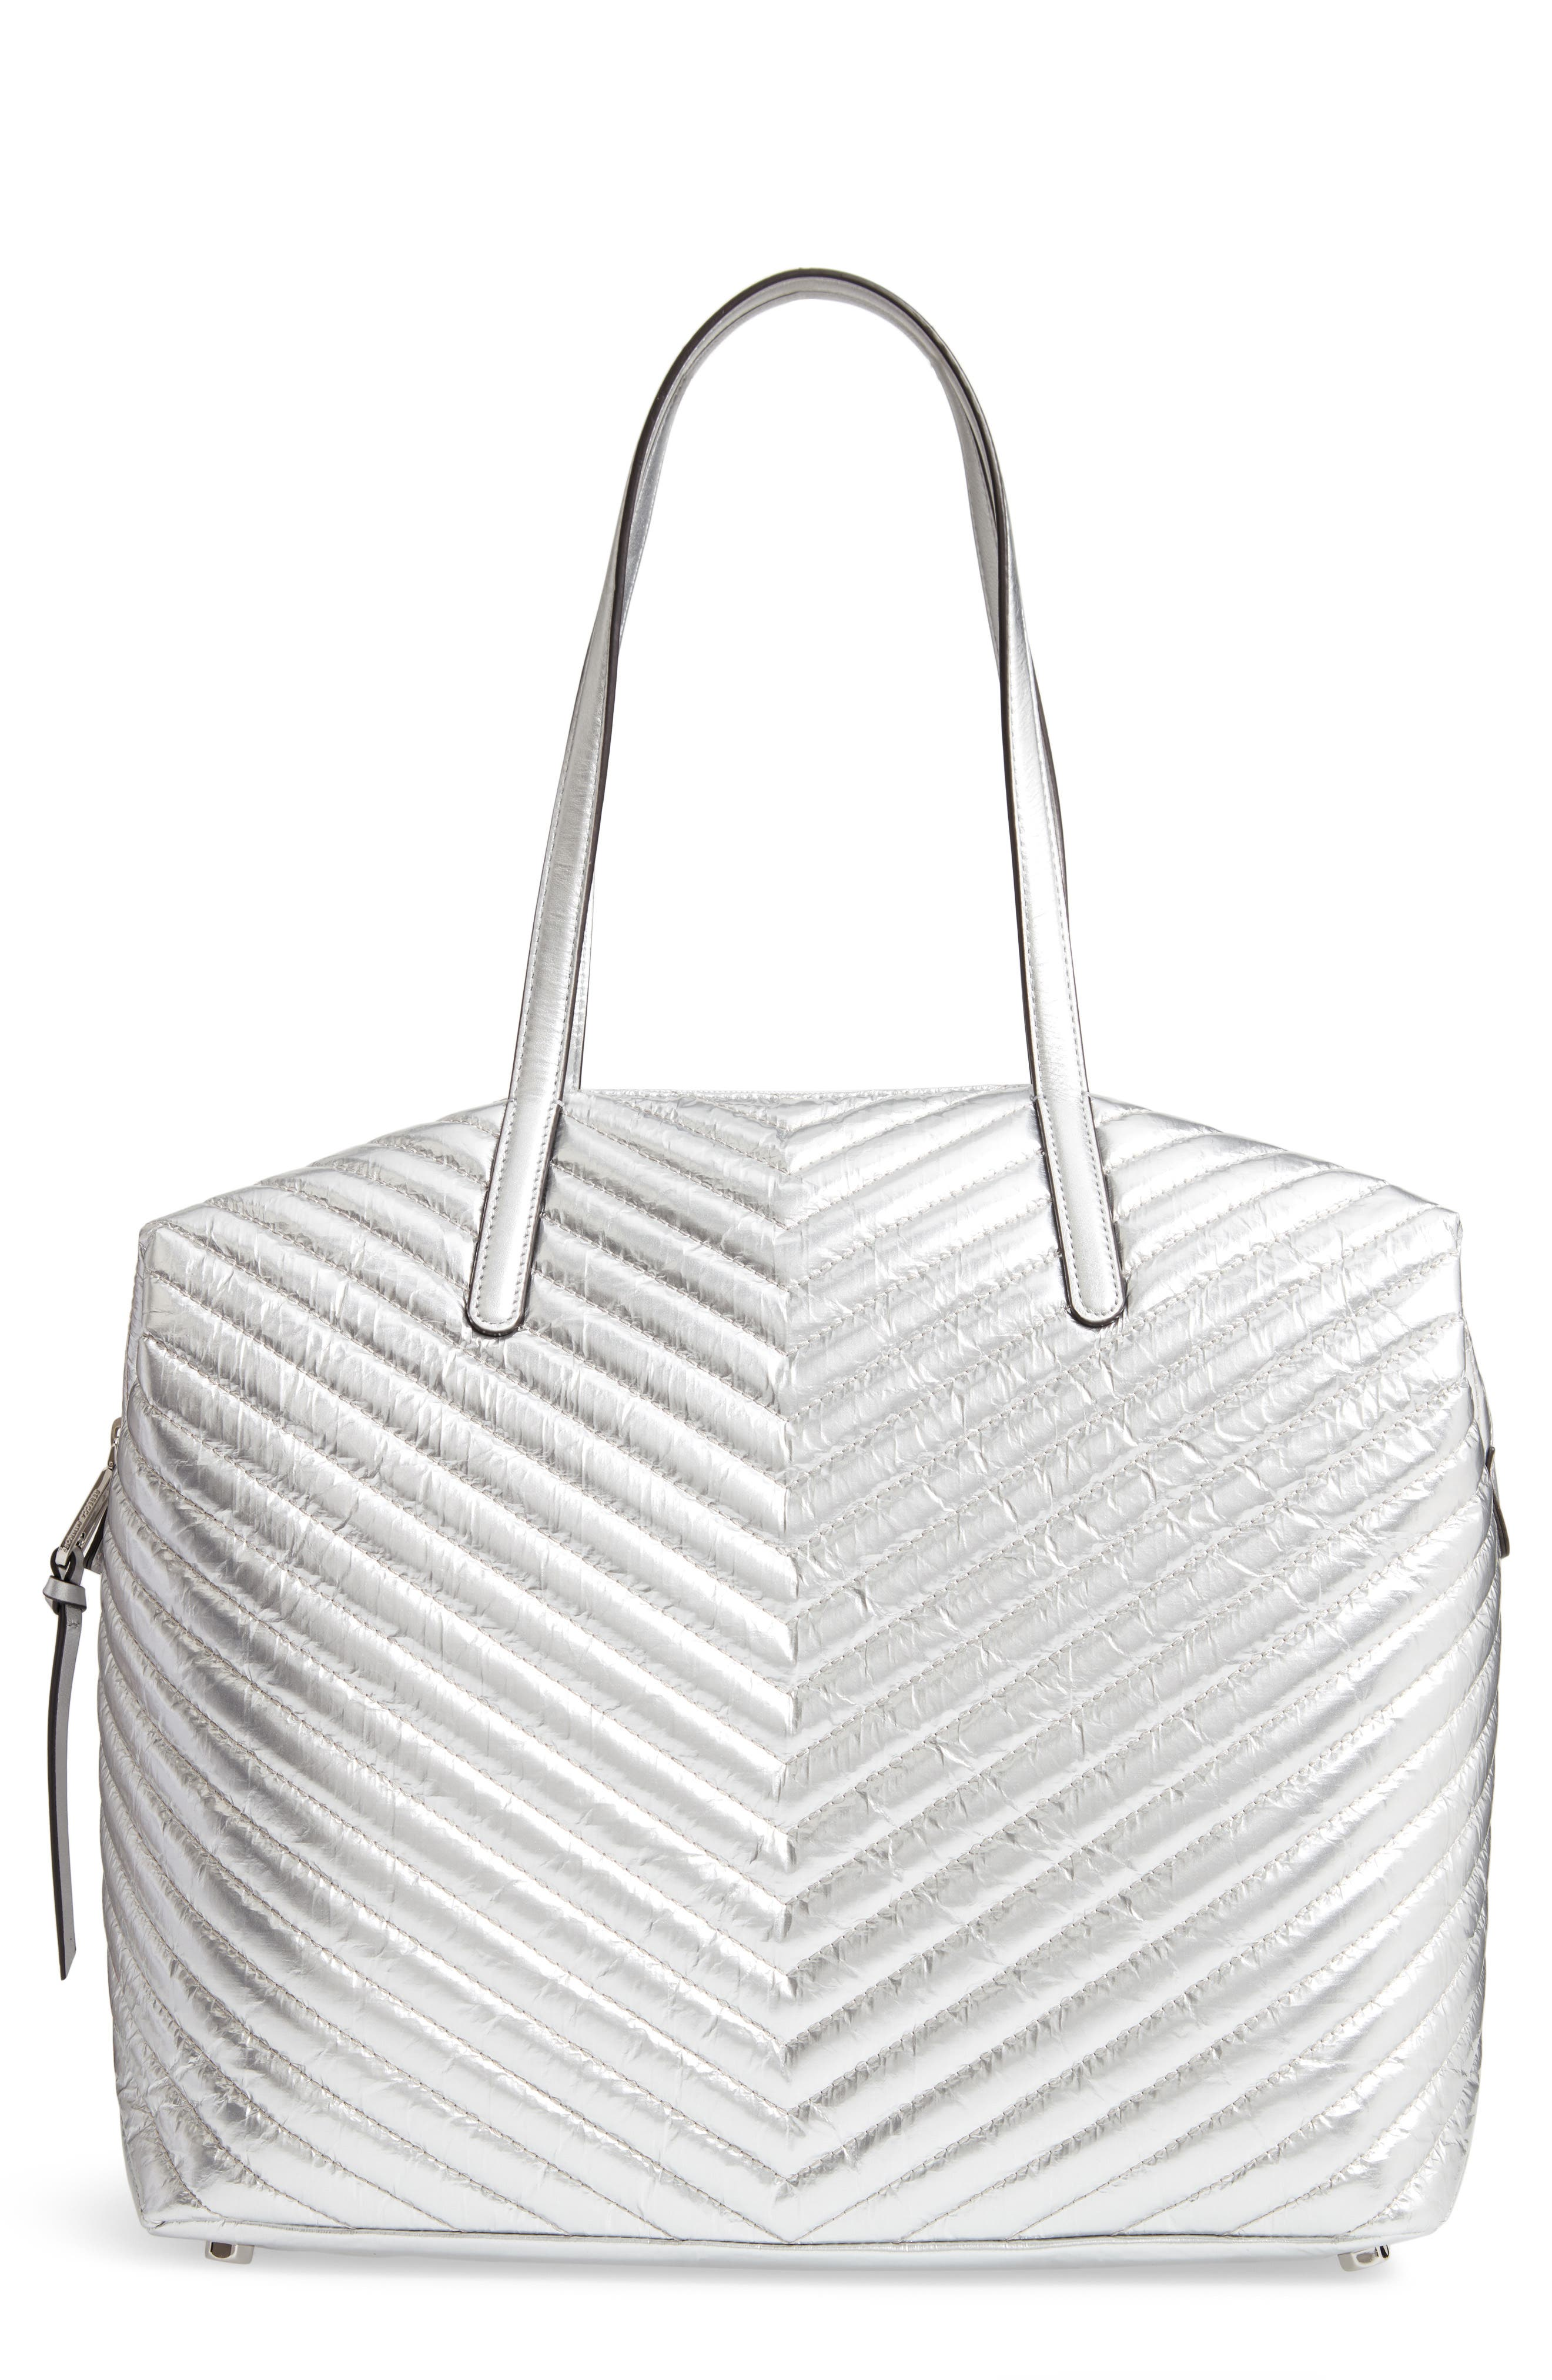 REBECCA MINKOFF, Quilted Nylon Tote, Main thumbnail 1, color, 040